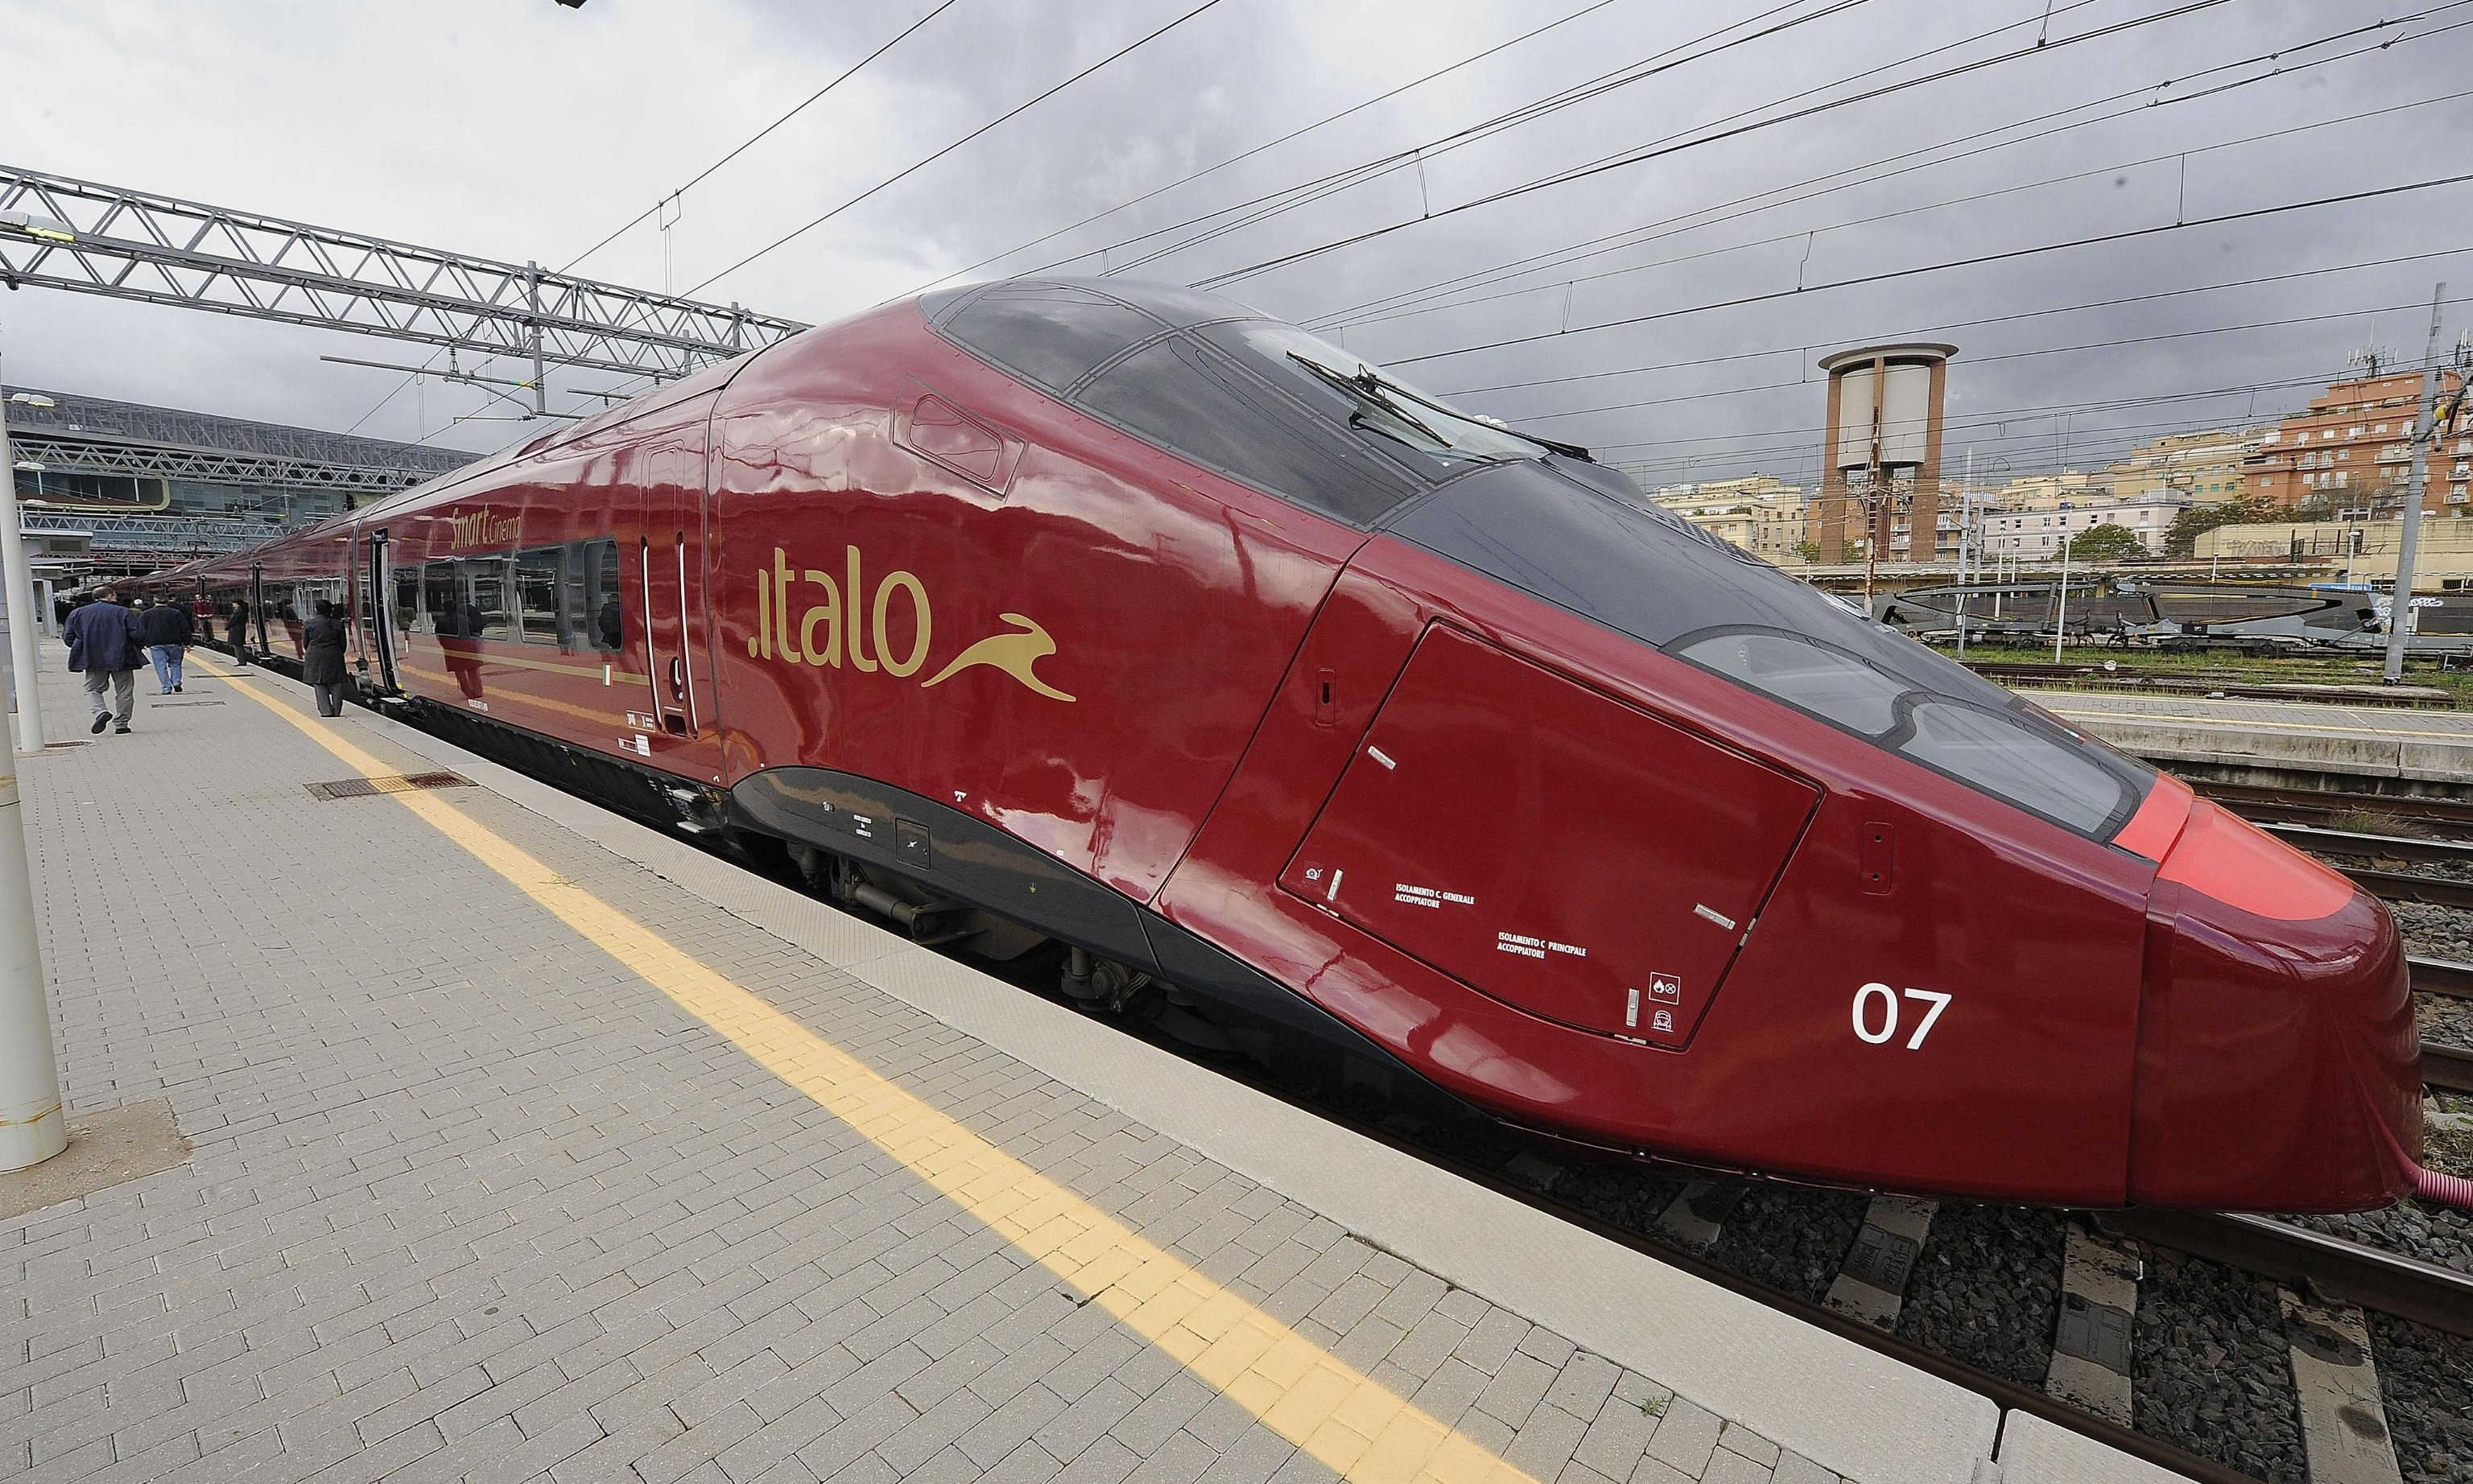 fastest train Italy,high speed train Italy,Italy high speed train ,world fastest train Italy